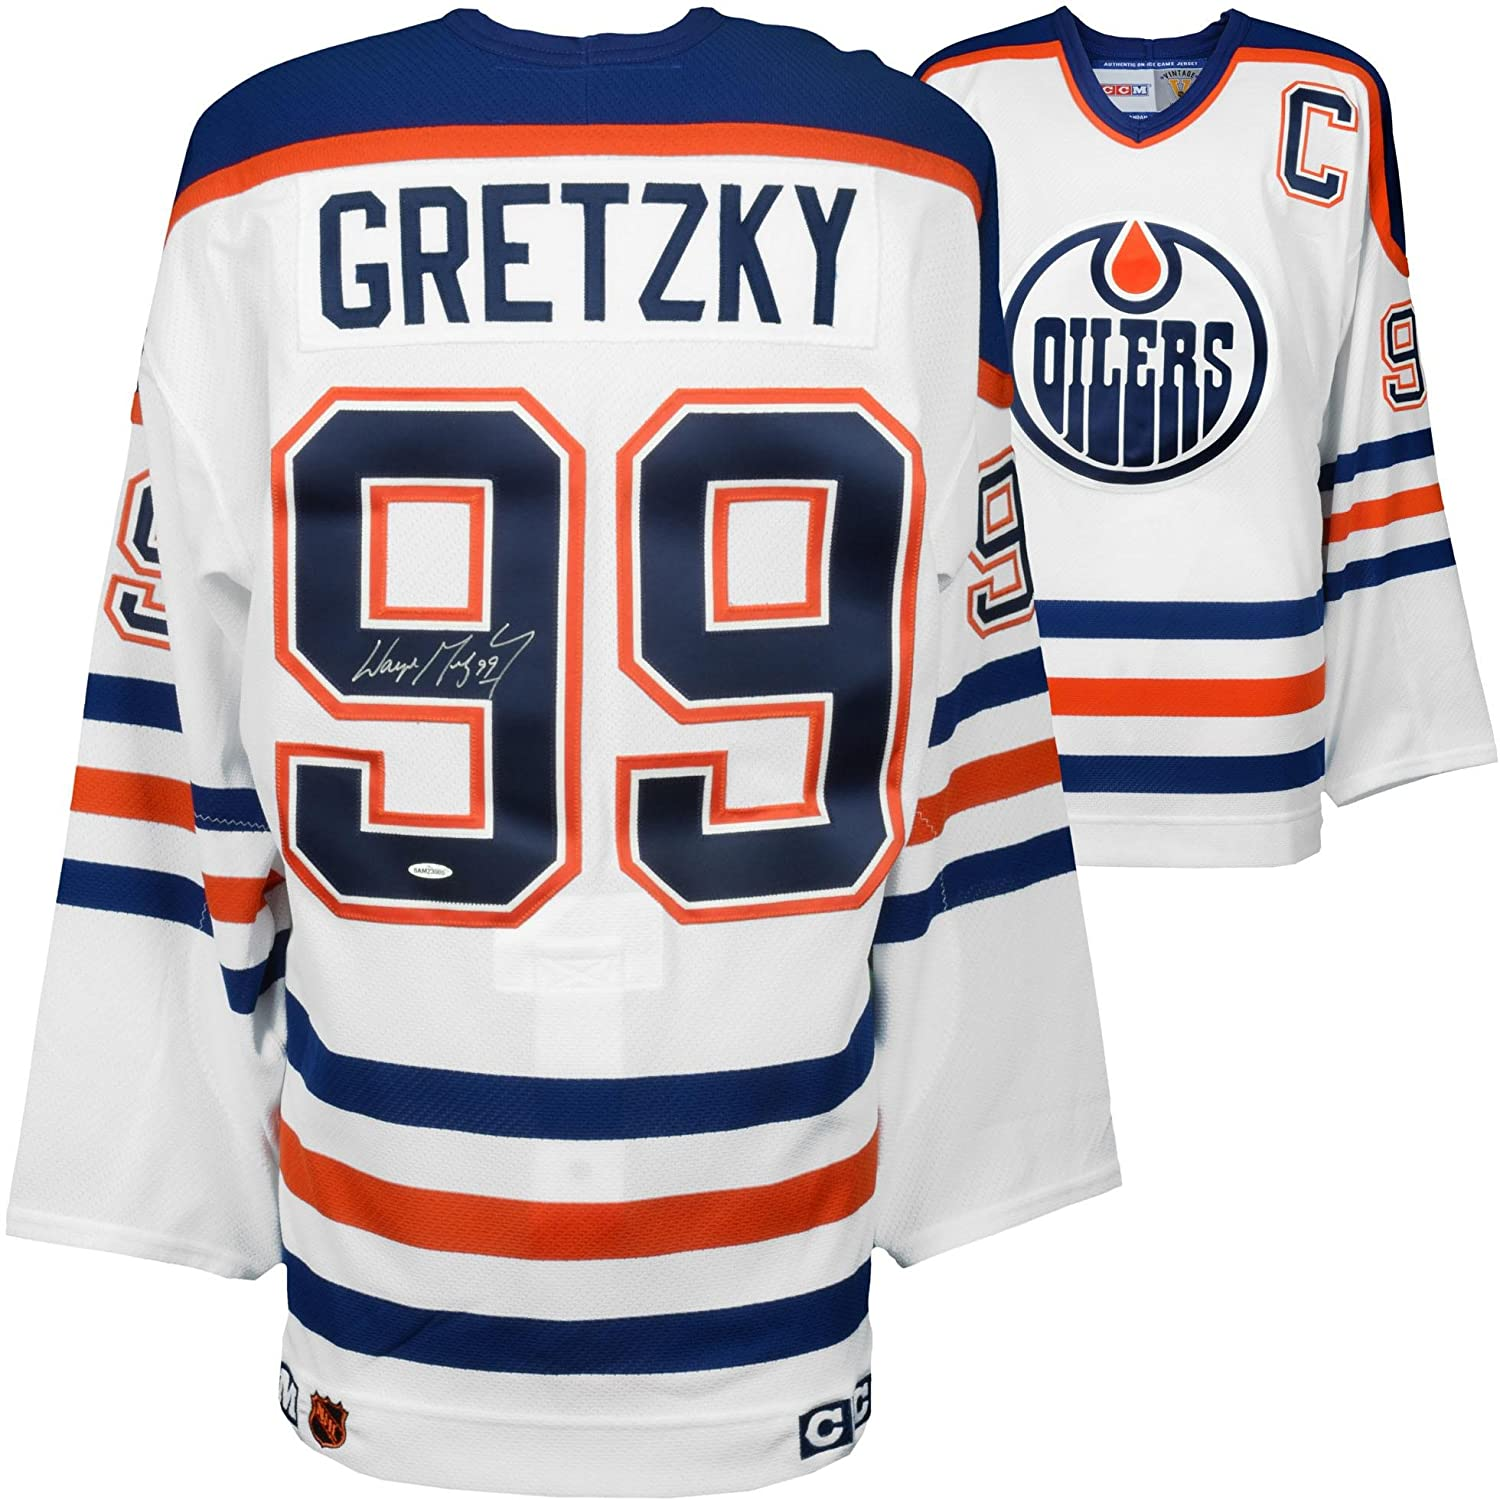 Wayne Gretzky Edmonton Oilers Autographed White CCM Jersey - Upper Deck -  Fanatics Authentic Certified at Amazon s Sports Collectibles Store 59a84da67